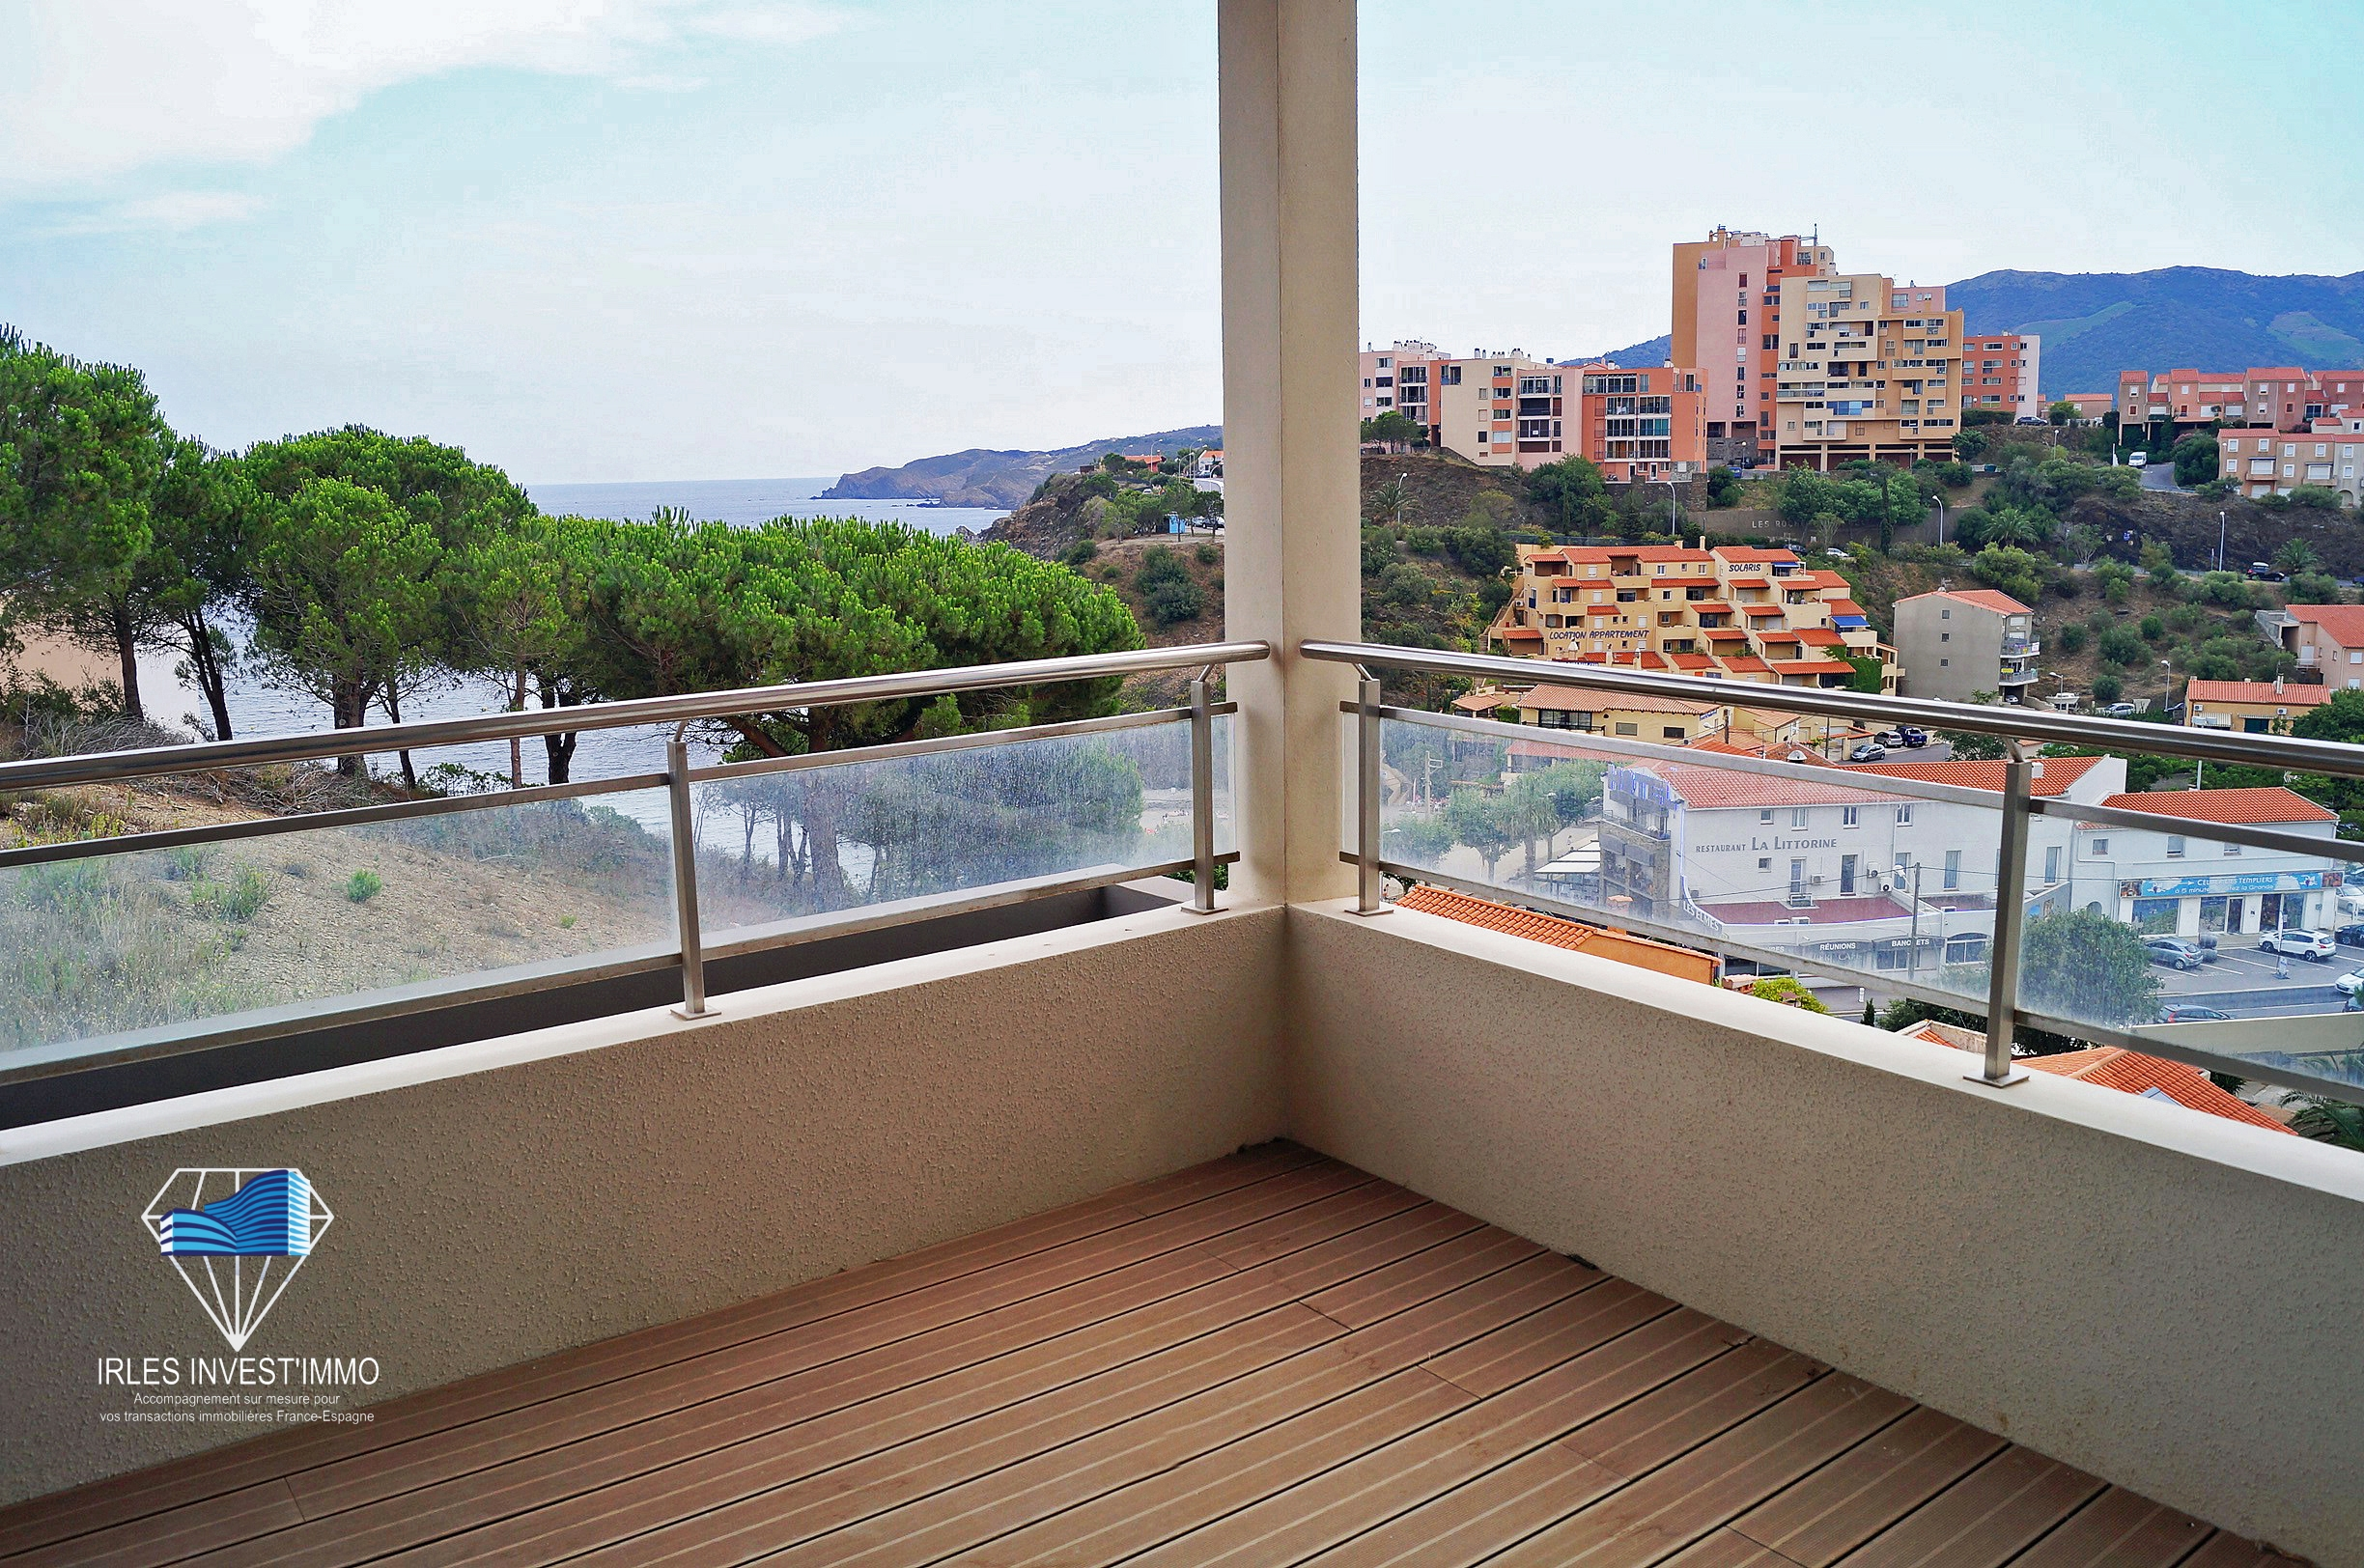 Vente promotion appartement neuf banyuls sur mer catalogne for Appartement neuf vente